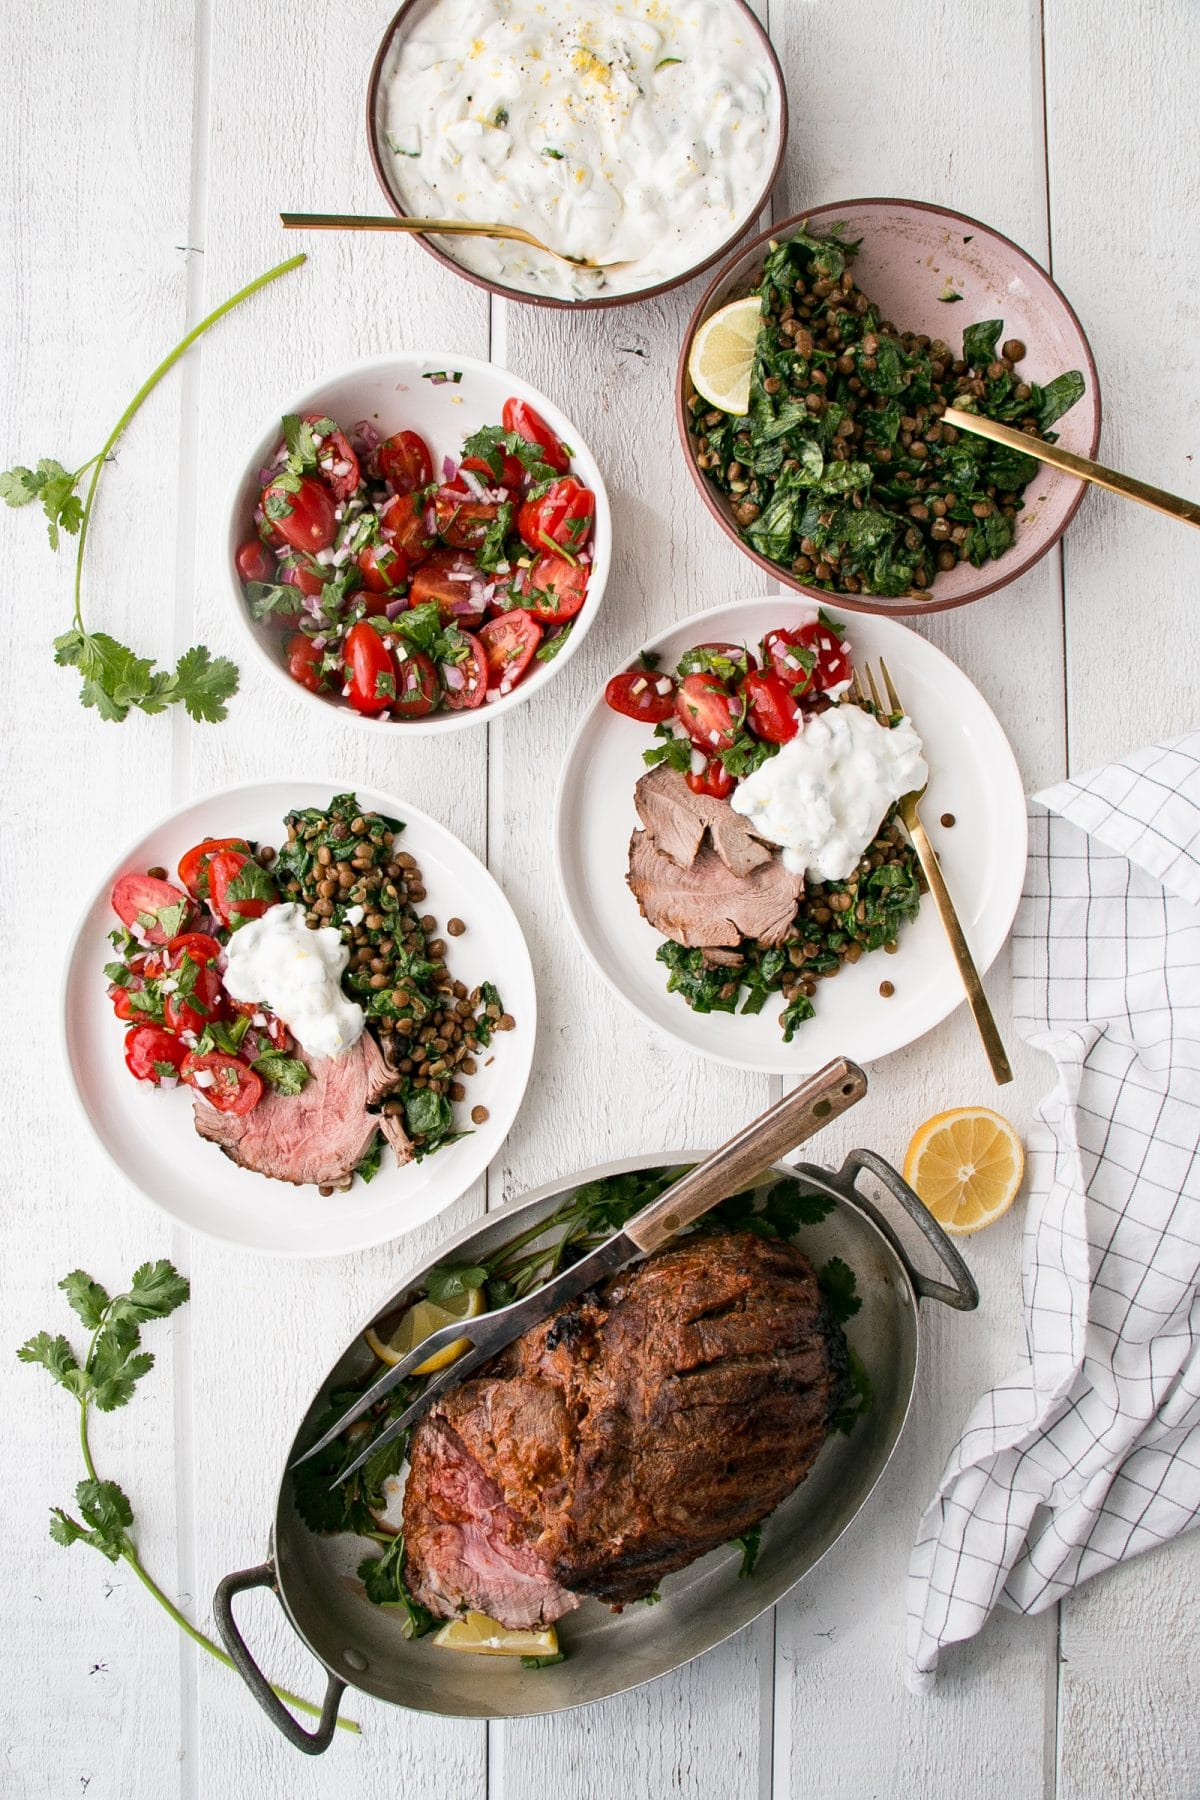 Curry spiced leg of lamb, spinach lentils, tomato salas and lemon yogurt on plates